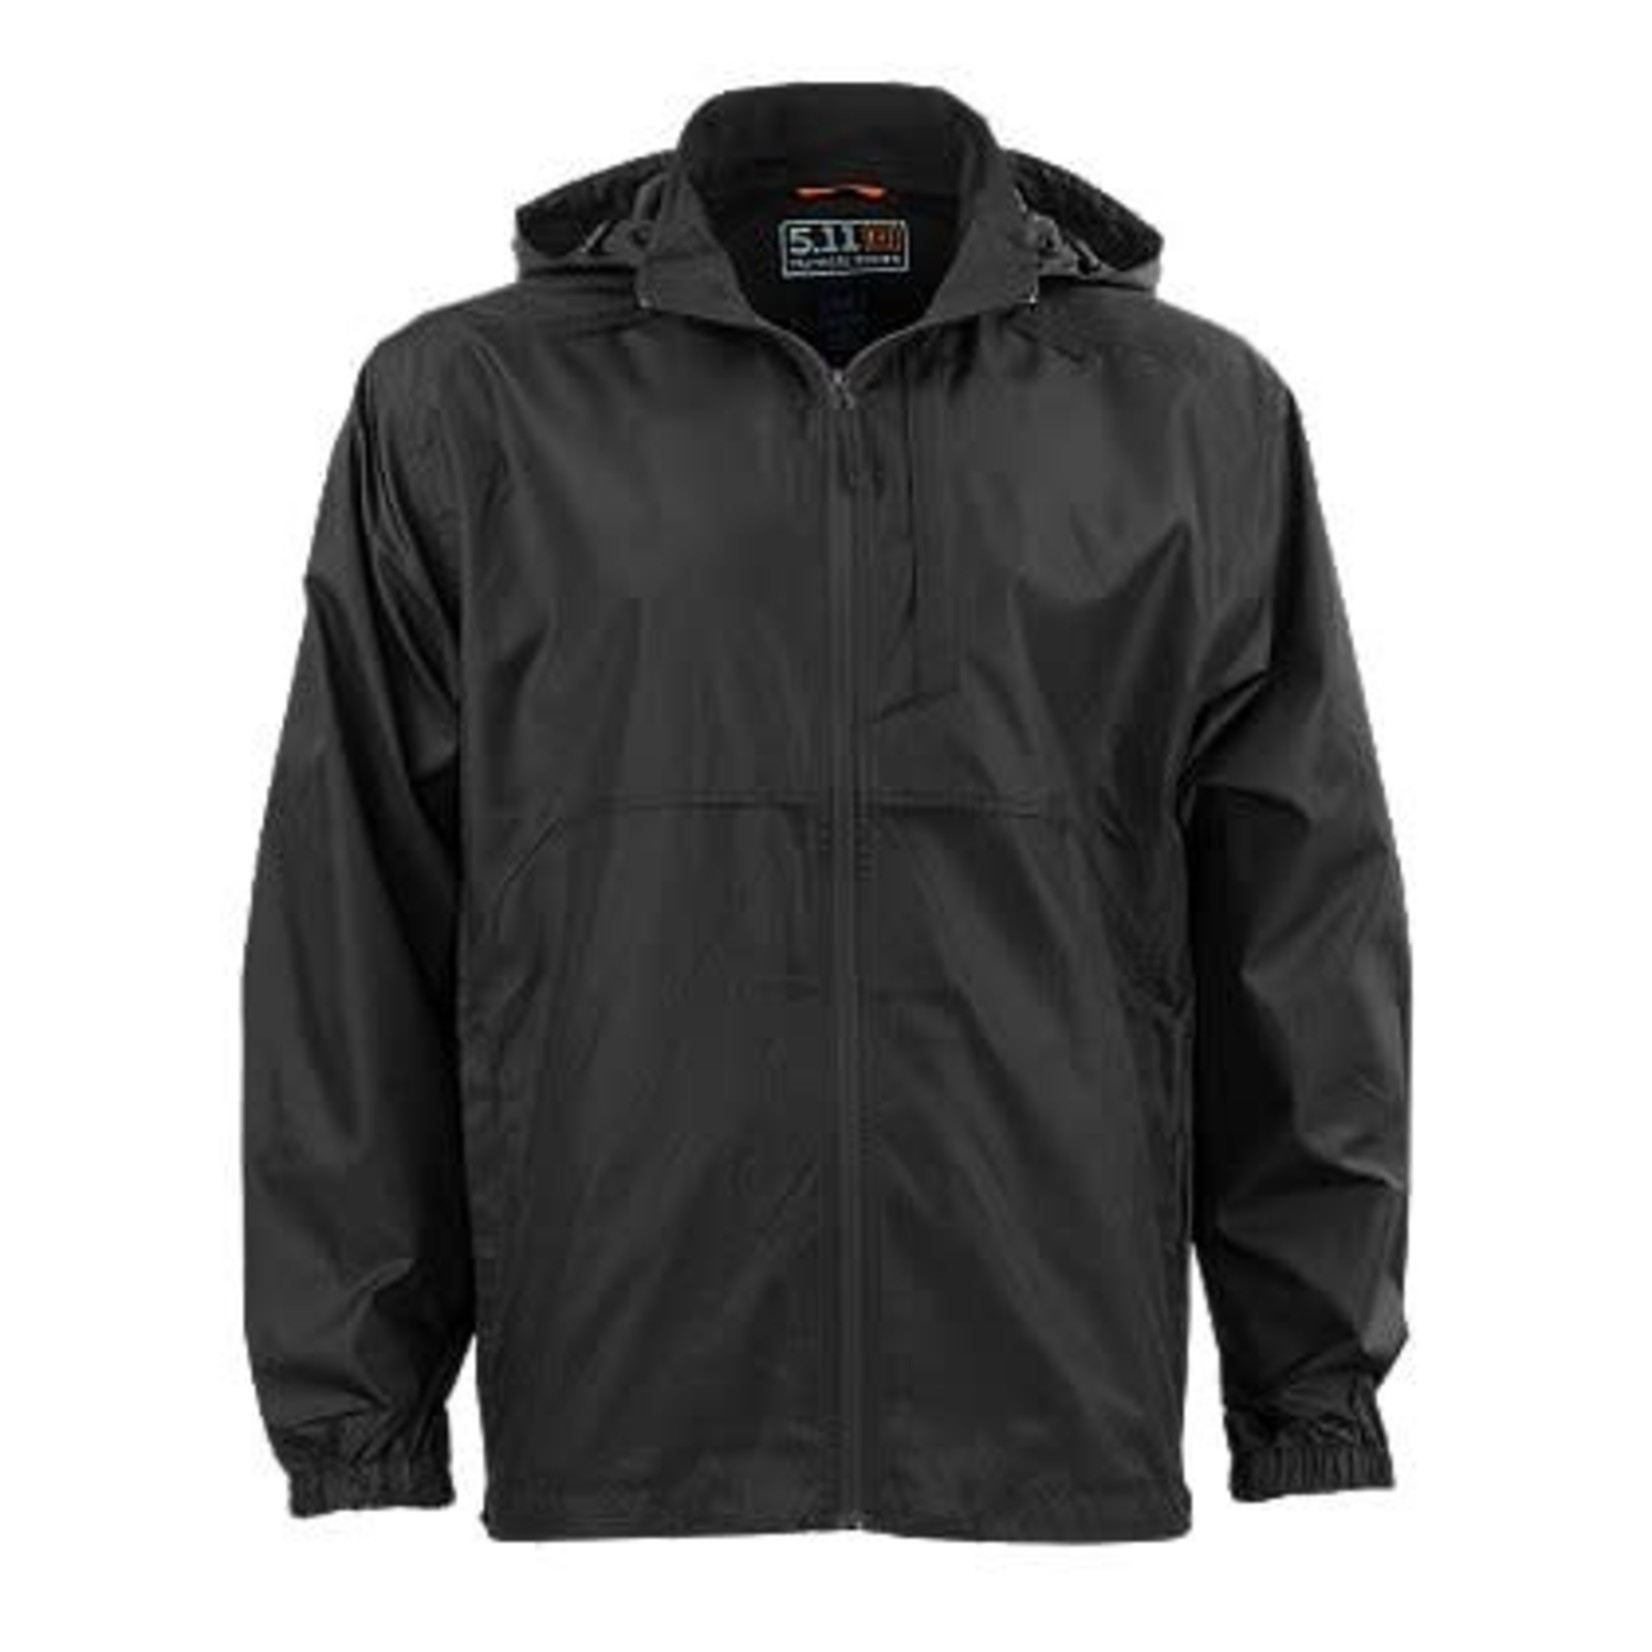 5.11 Tactical 5.11 Packable Operator Jacket